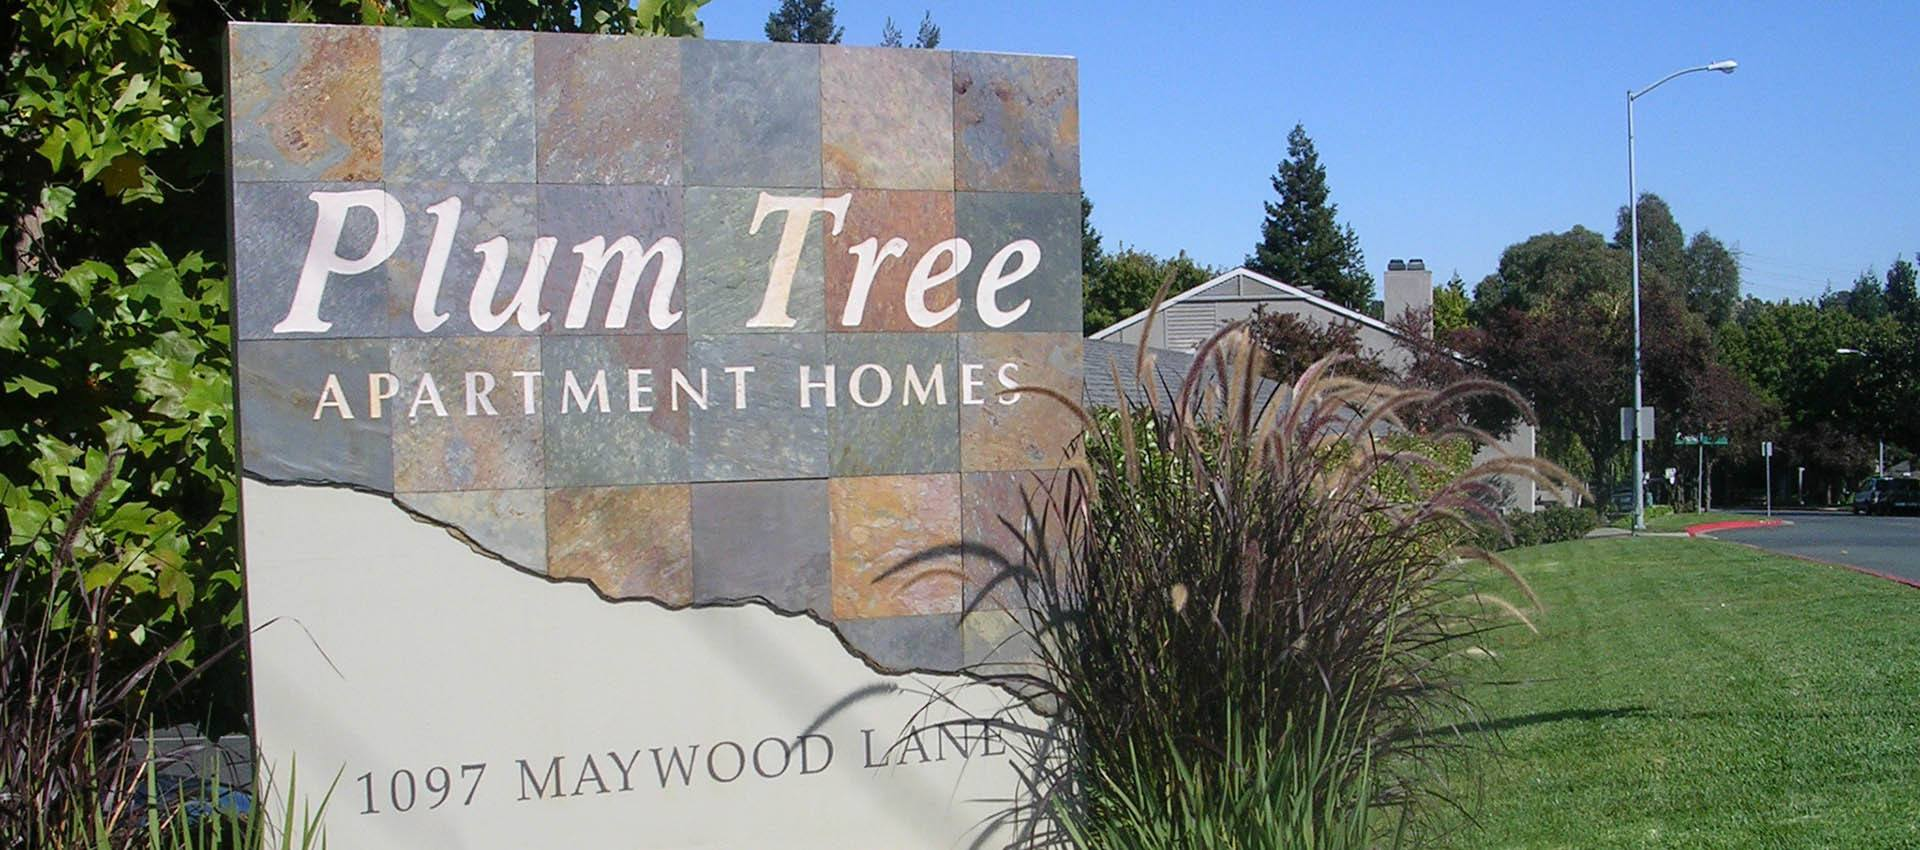 Signage at Plum Tree Apartment Homes in Martinez, CA